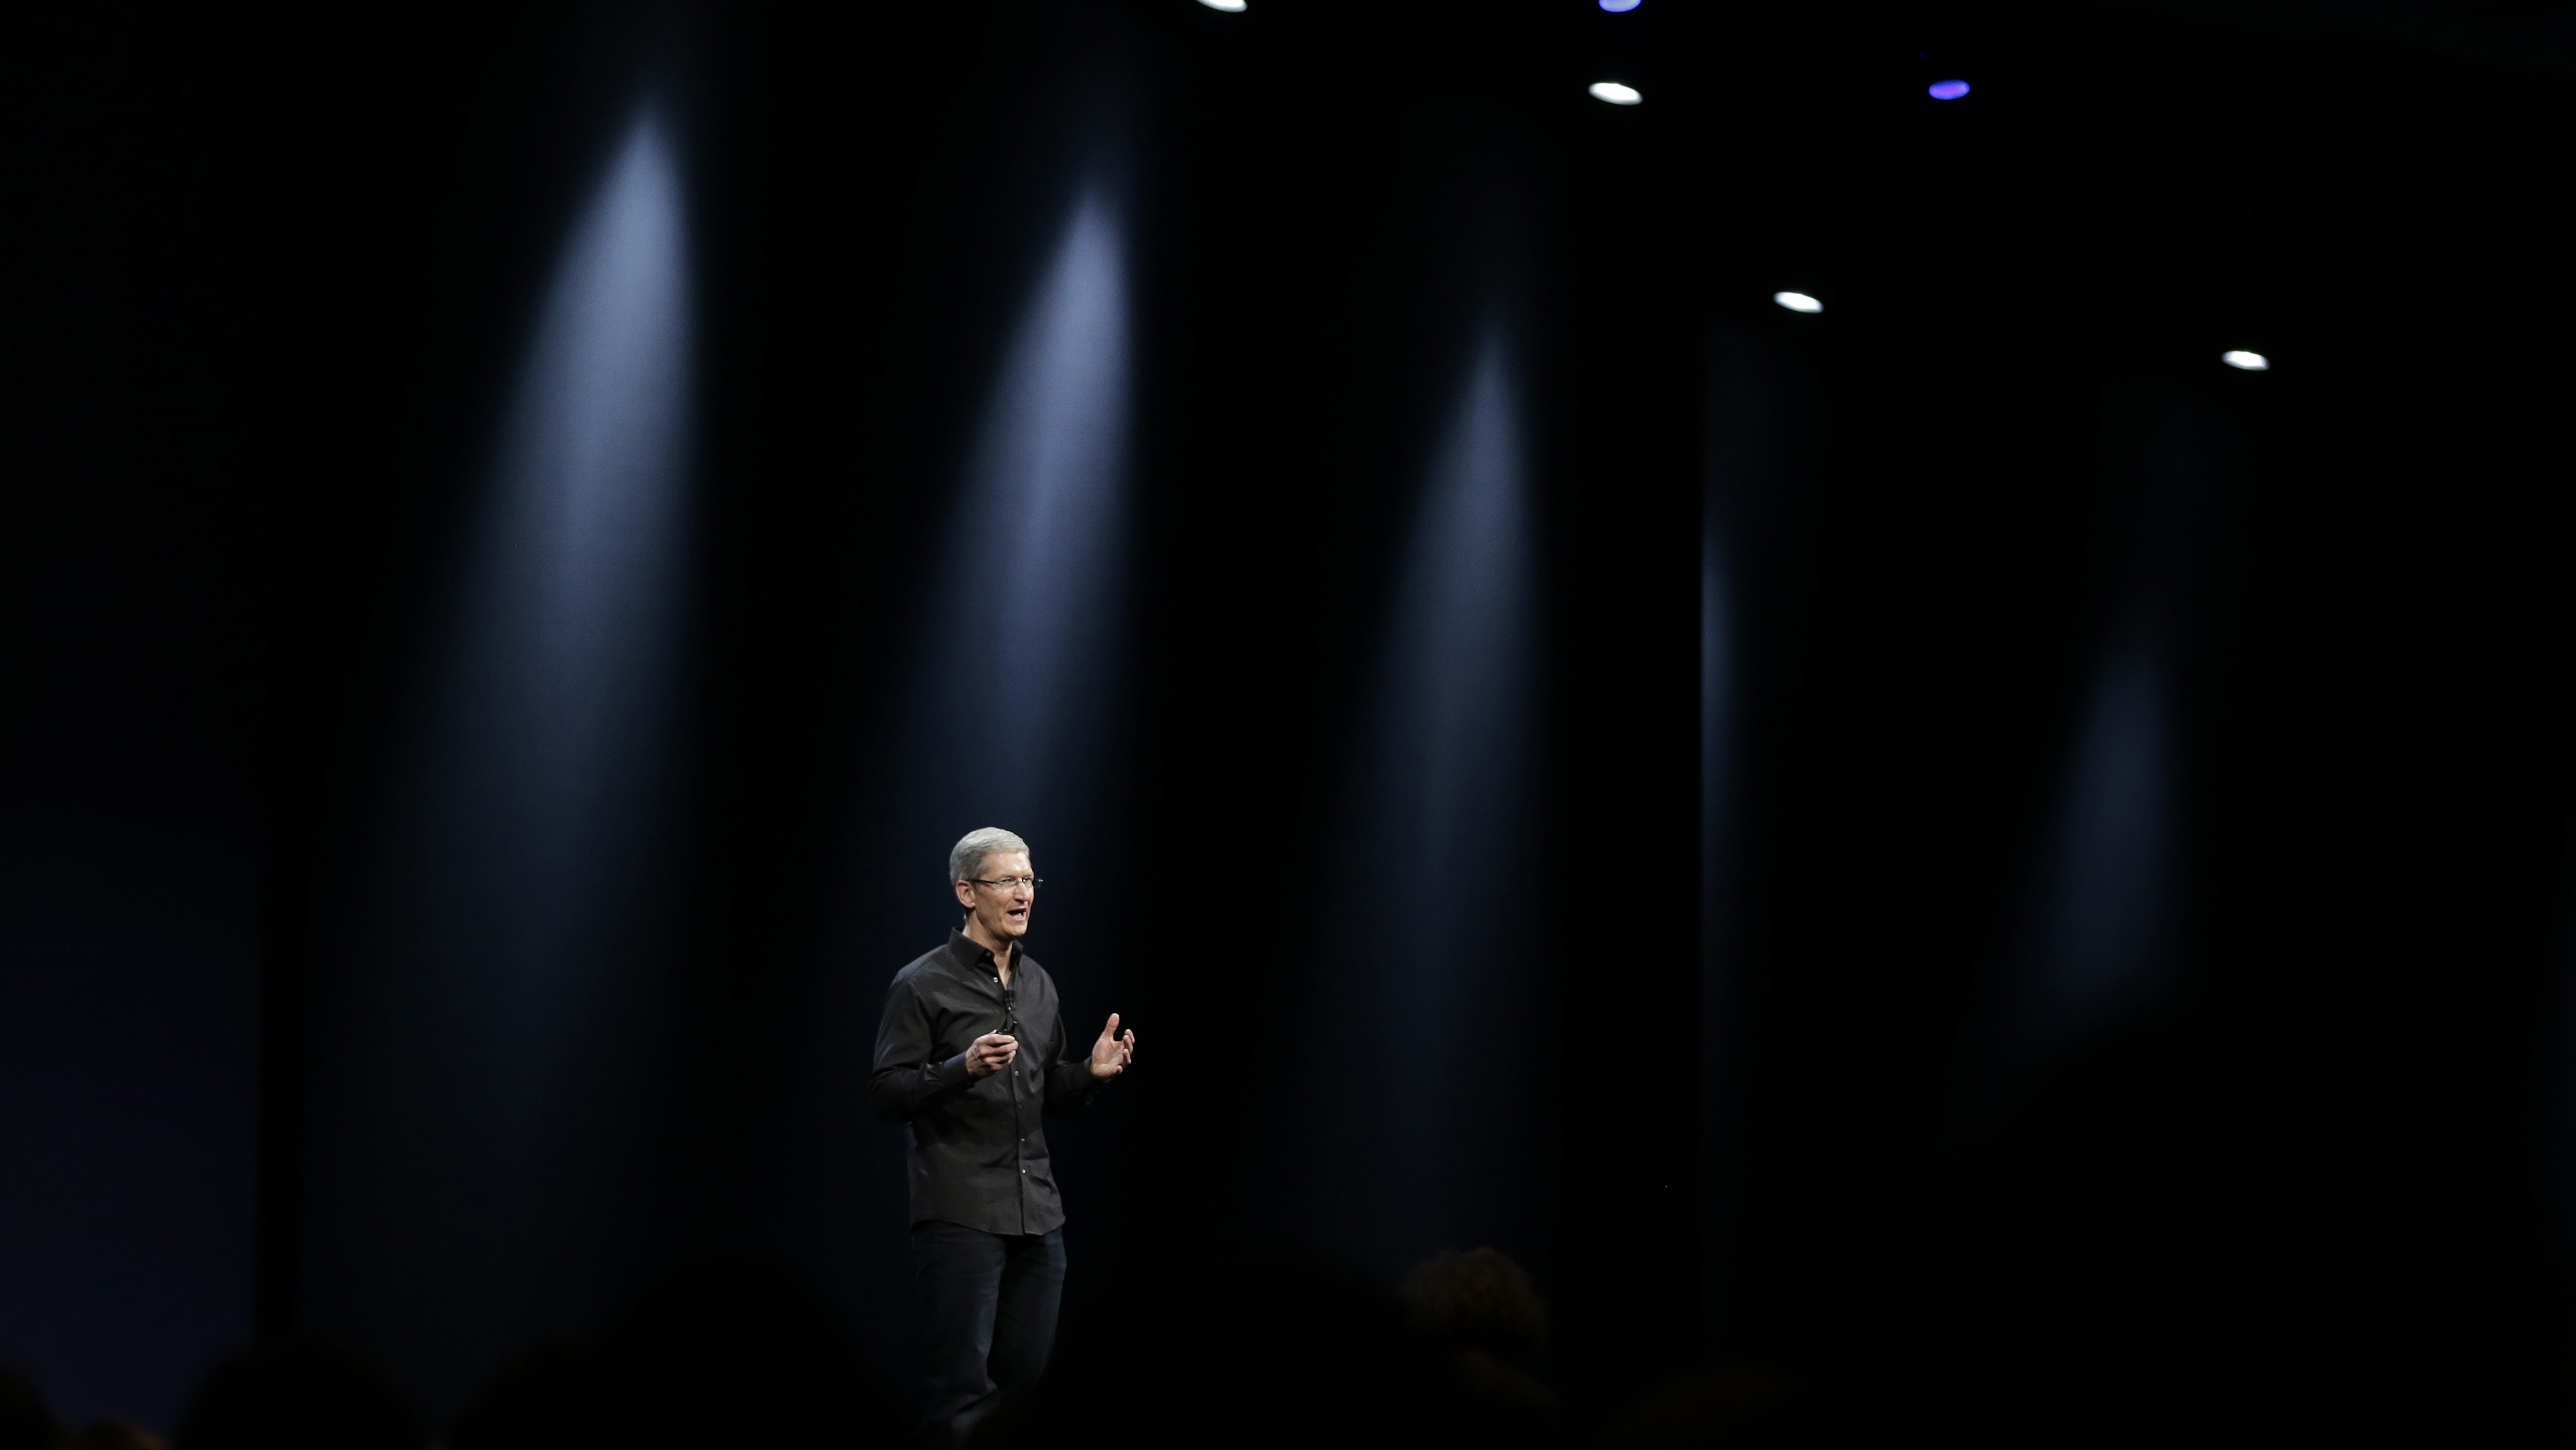 Apple CEO Tim Cook during the keynote address of the Apple Worldwide Developers Conference WWDC Monday, June 10, 2013 in San Francisco. (AP Photo/Eric Risberg)